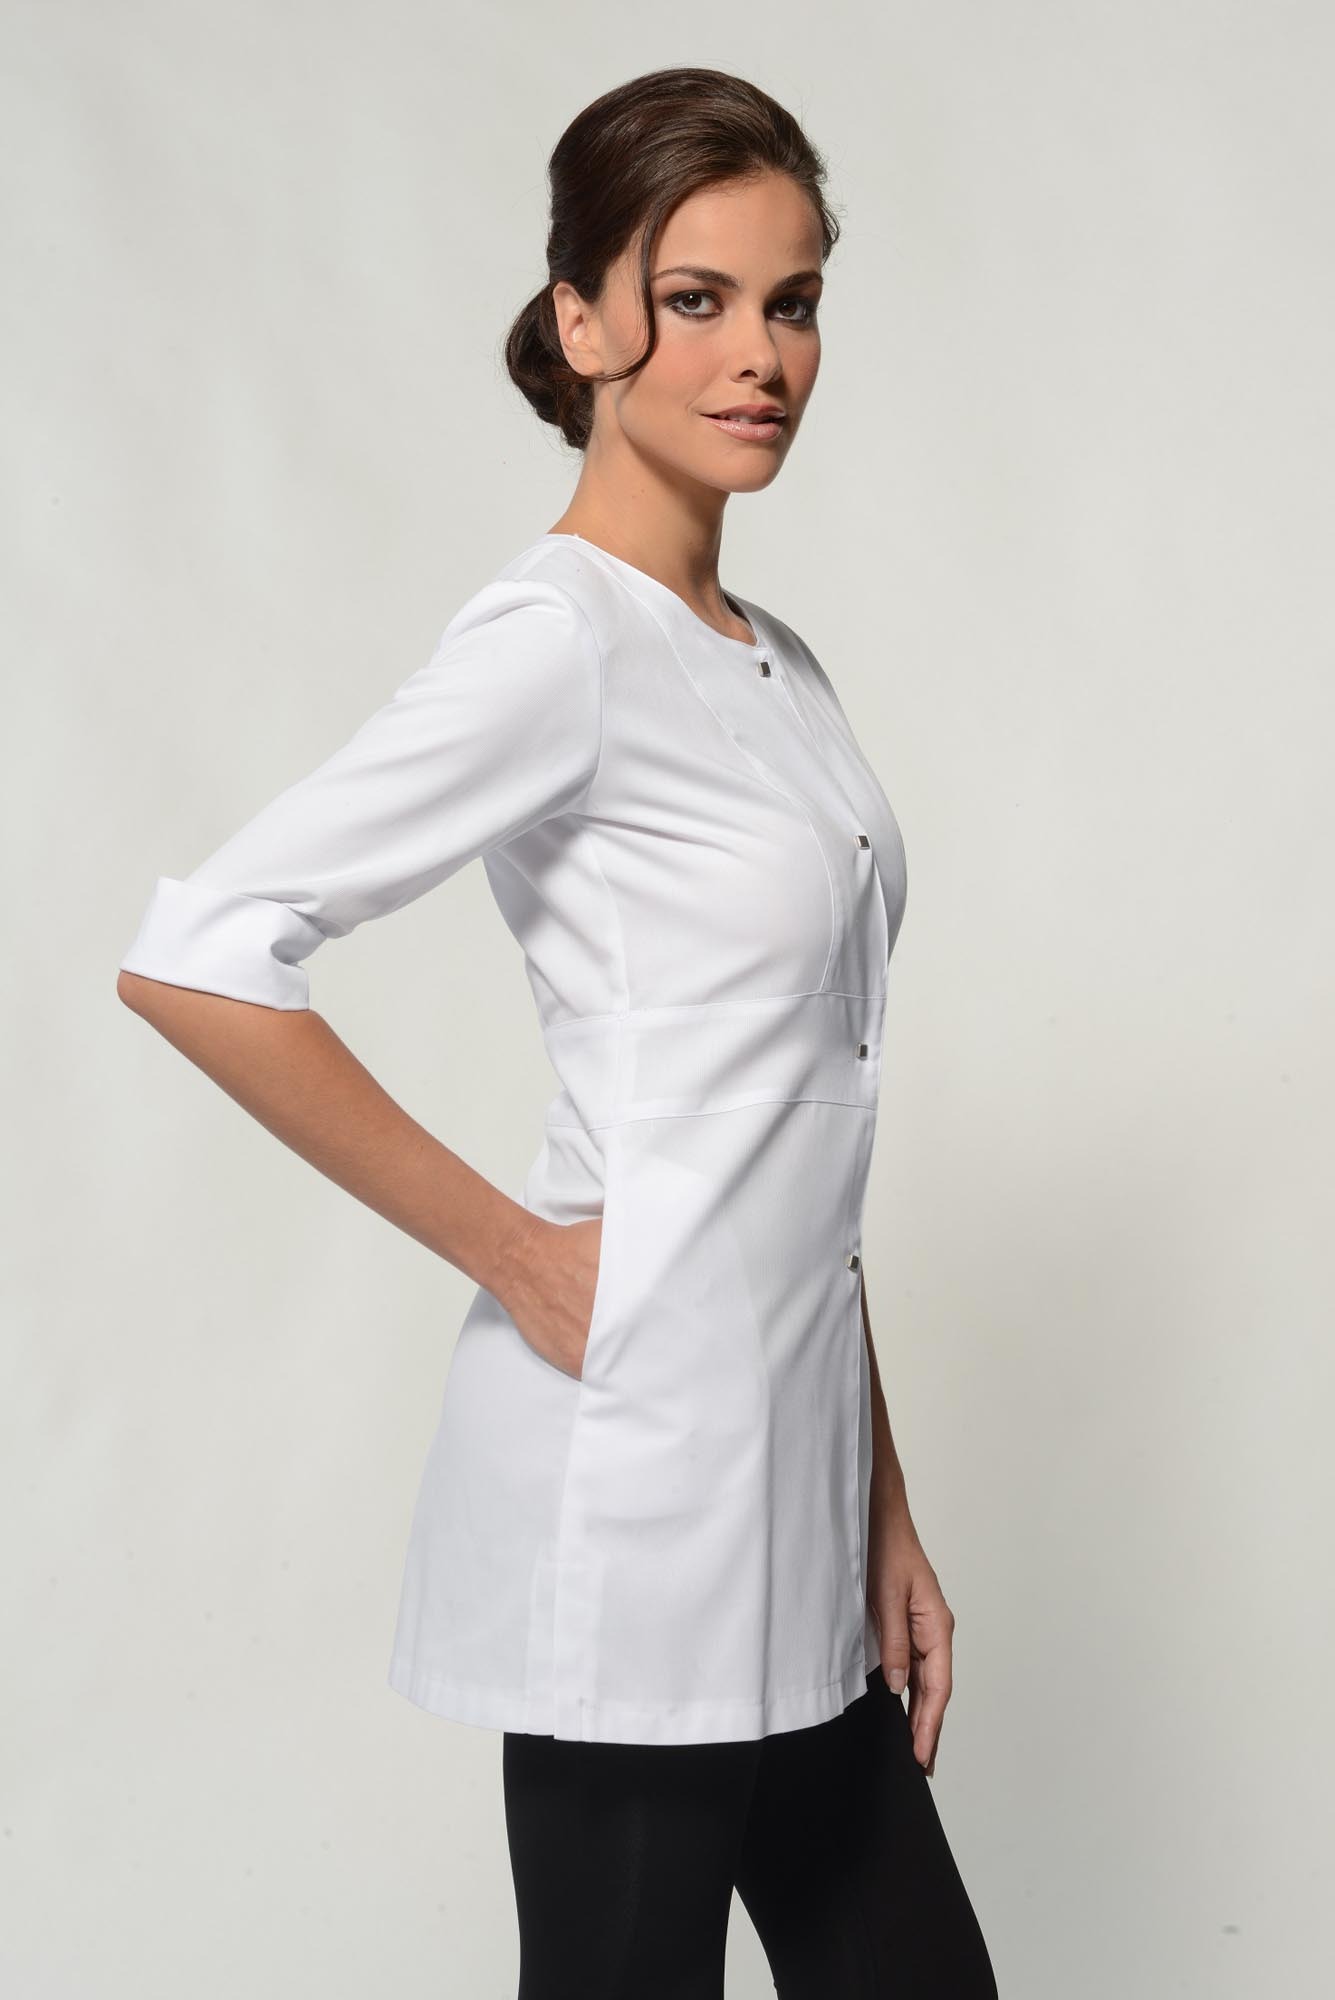 spa uniform from europe pictures to pin on pinterest